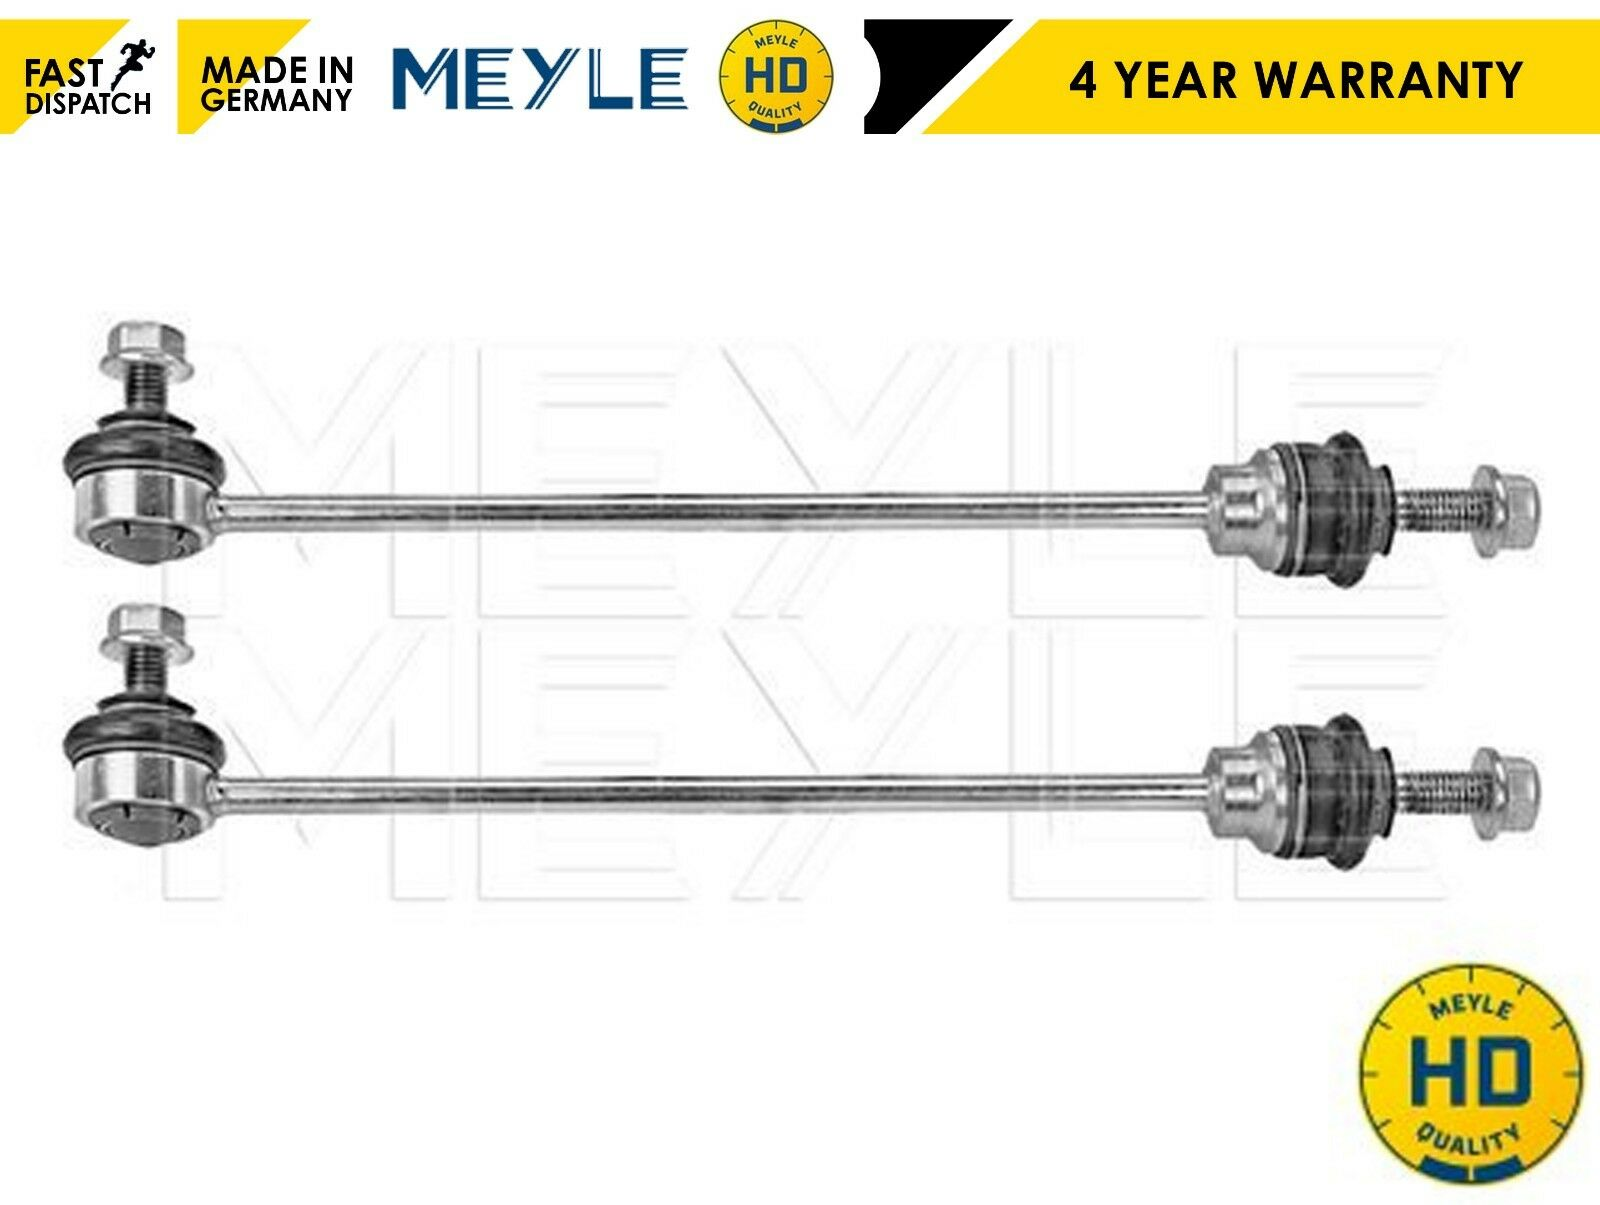 FOR CITREON SAXO 96-03 X VTR VTS D MEYLE HD FRONT ANTIROLL BAR STABILISER LINKS